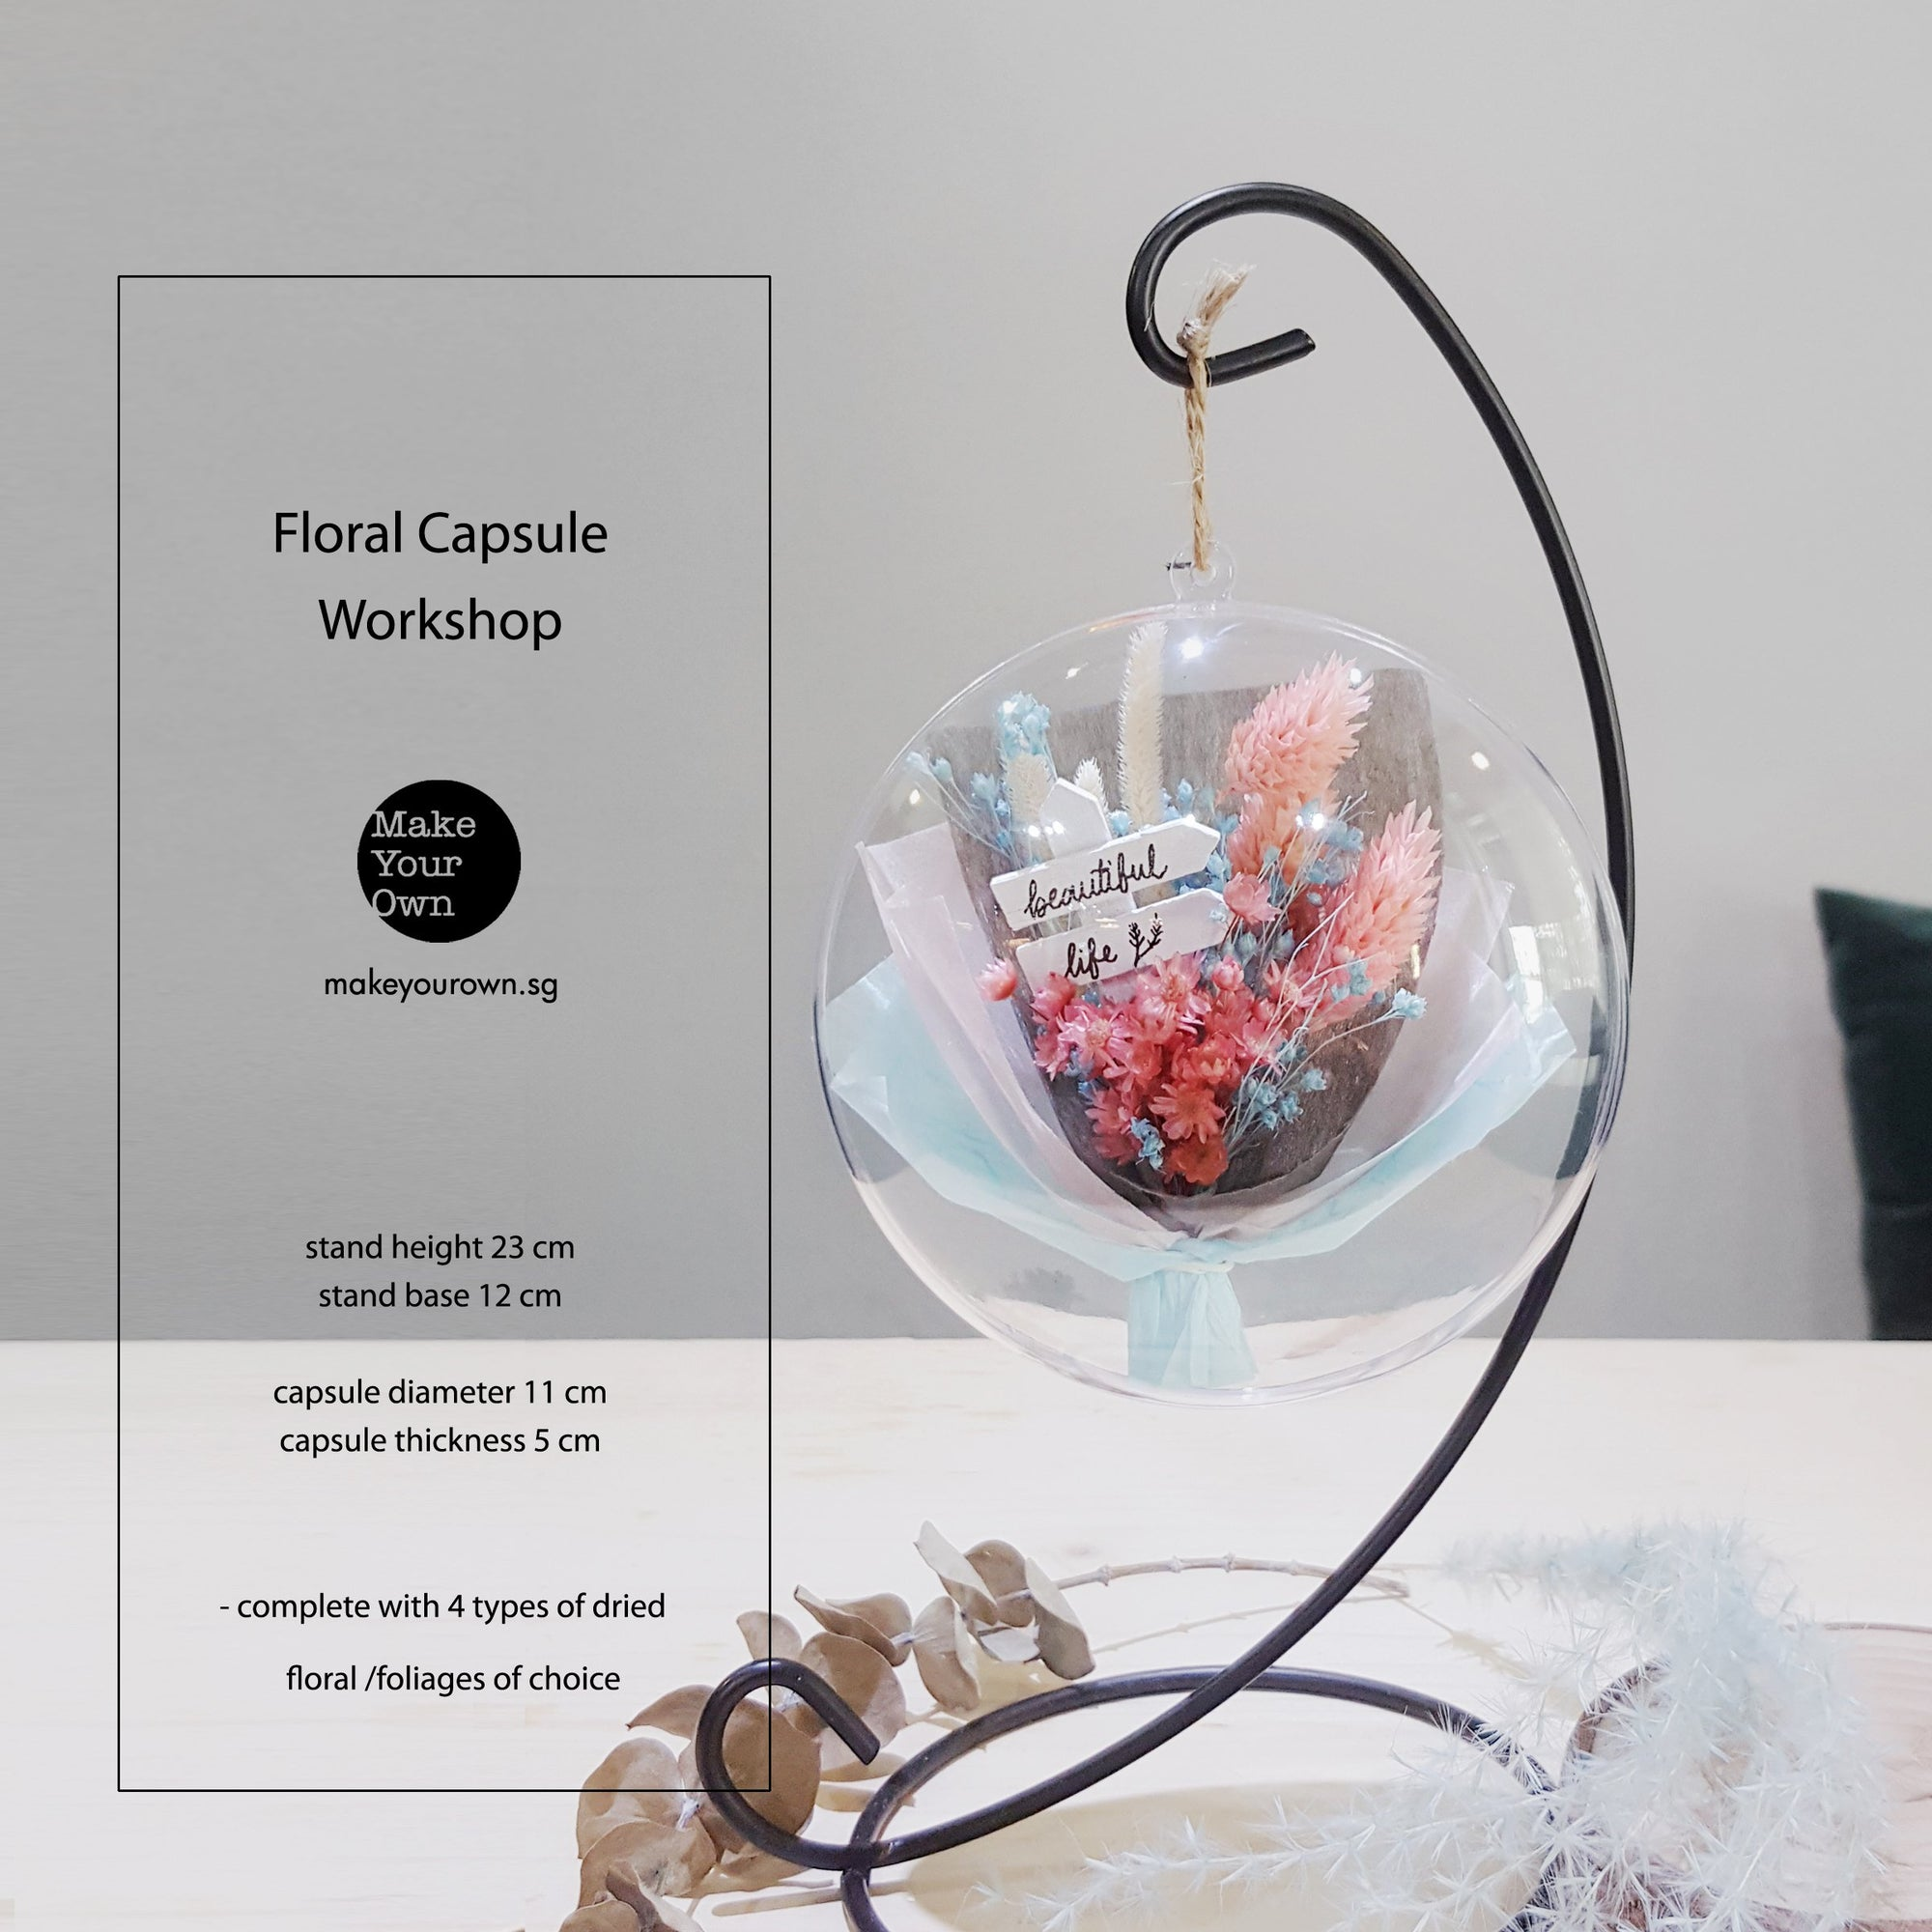 floral capsule workshop singapore korean bouquet wrapping dried preserved flowers